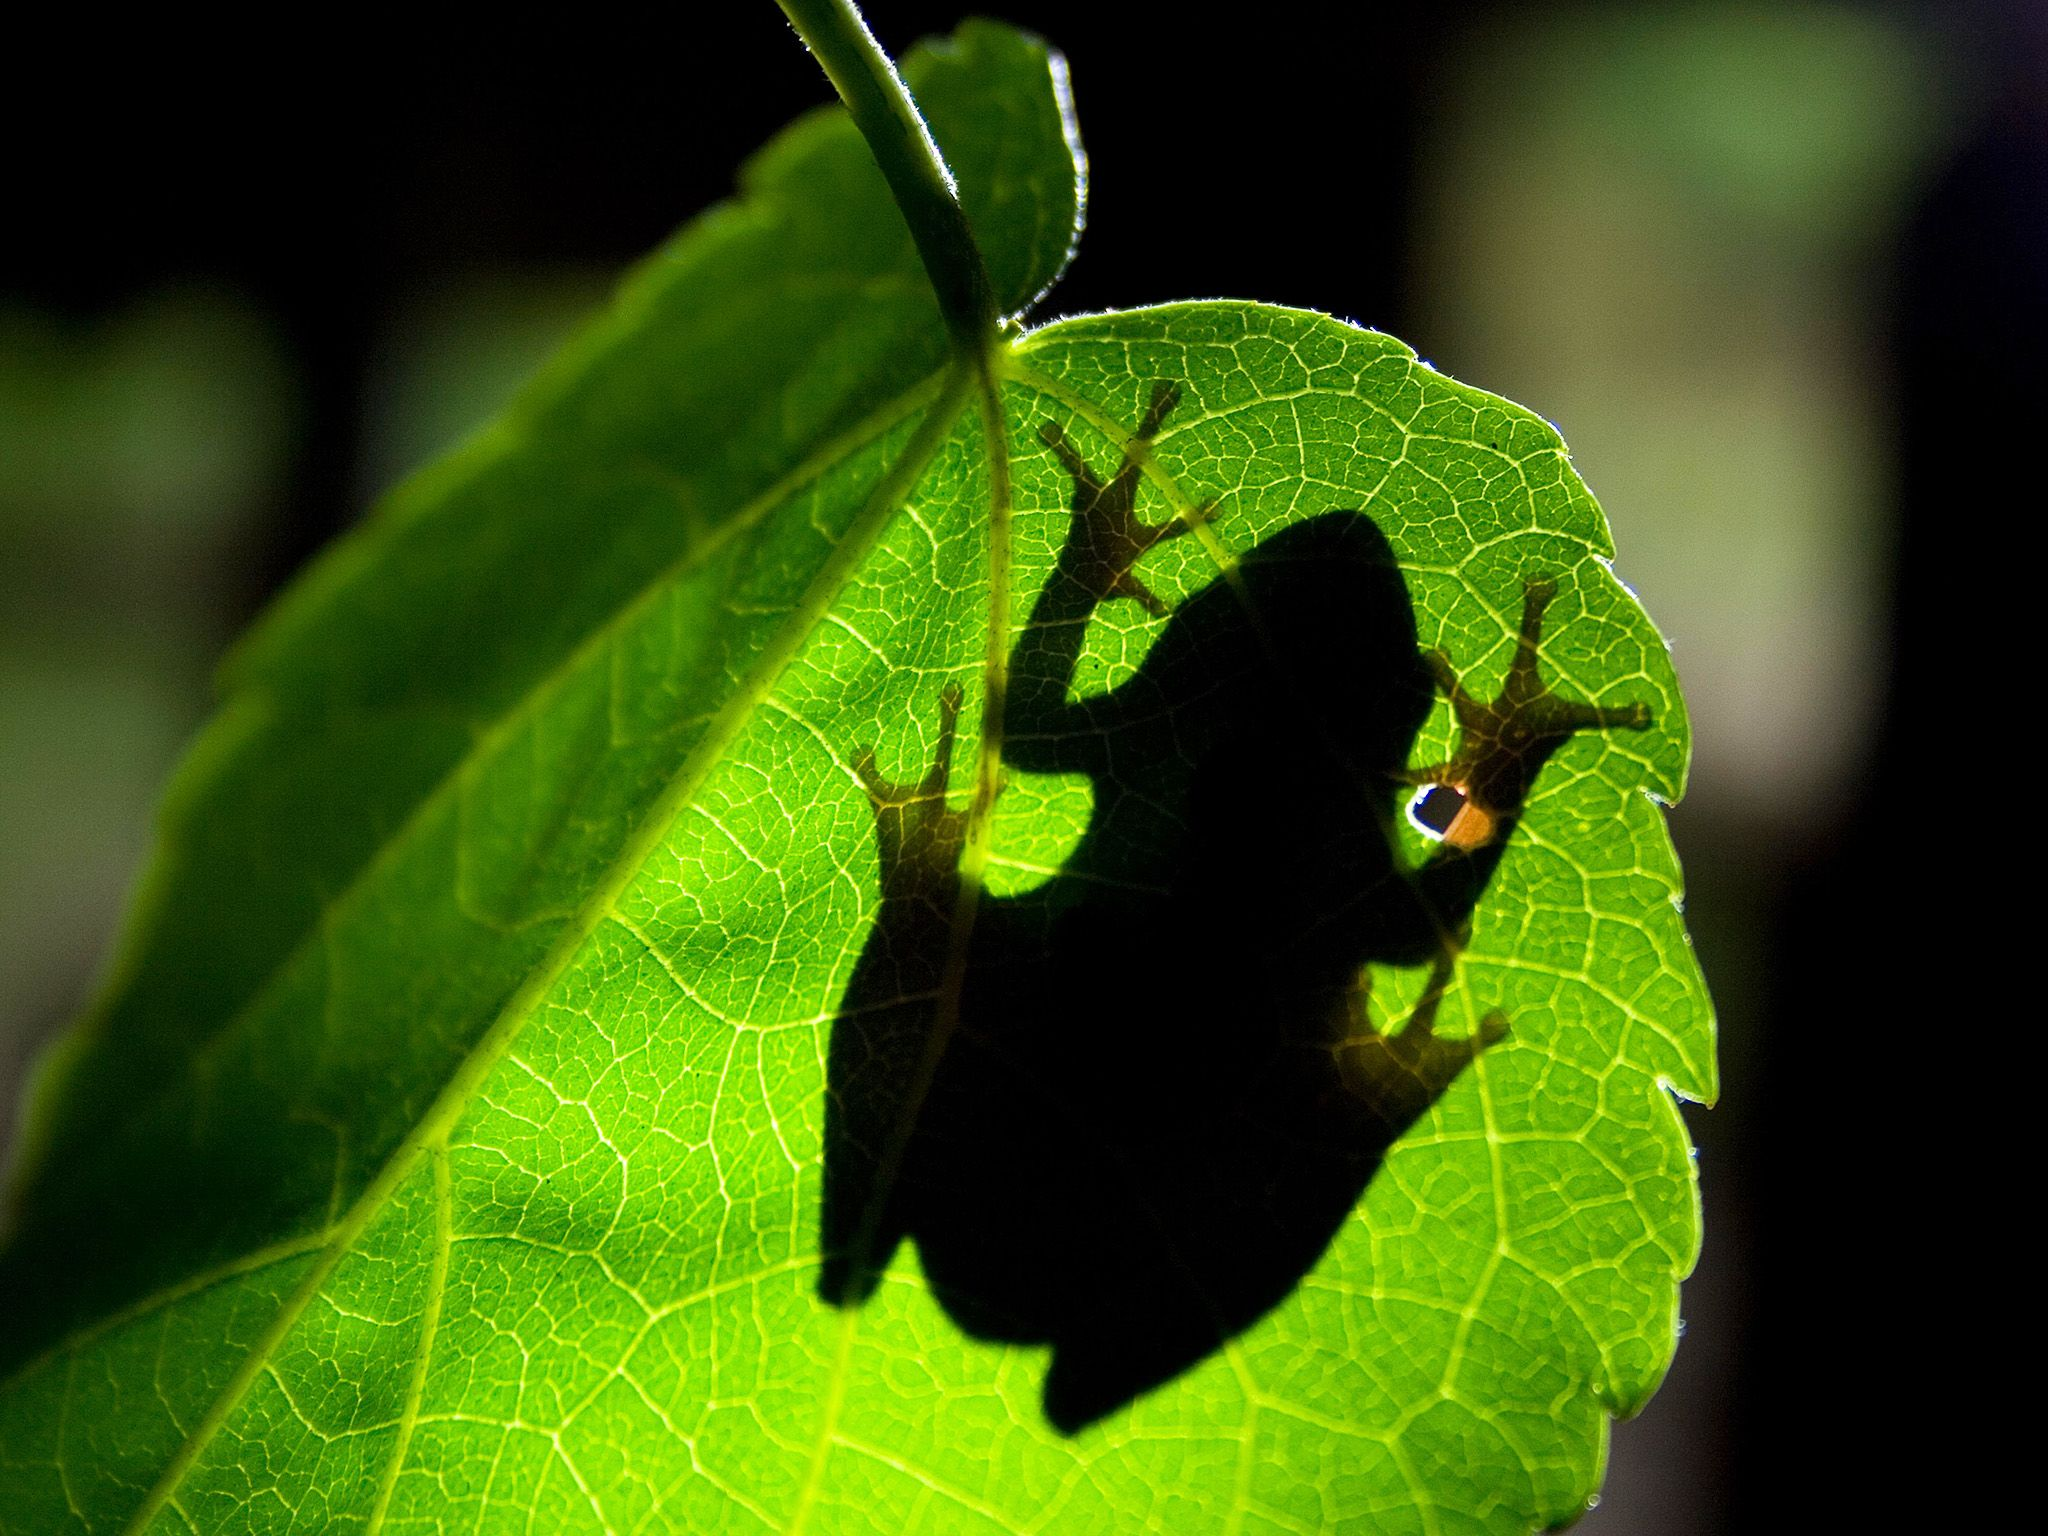 Underside shot looking up through leaf to silhouette of tree frog. Tree frogs distinctive... [Photo of the day - May 2015]